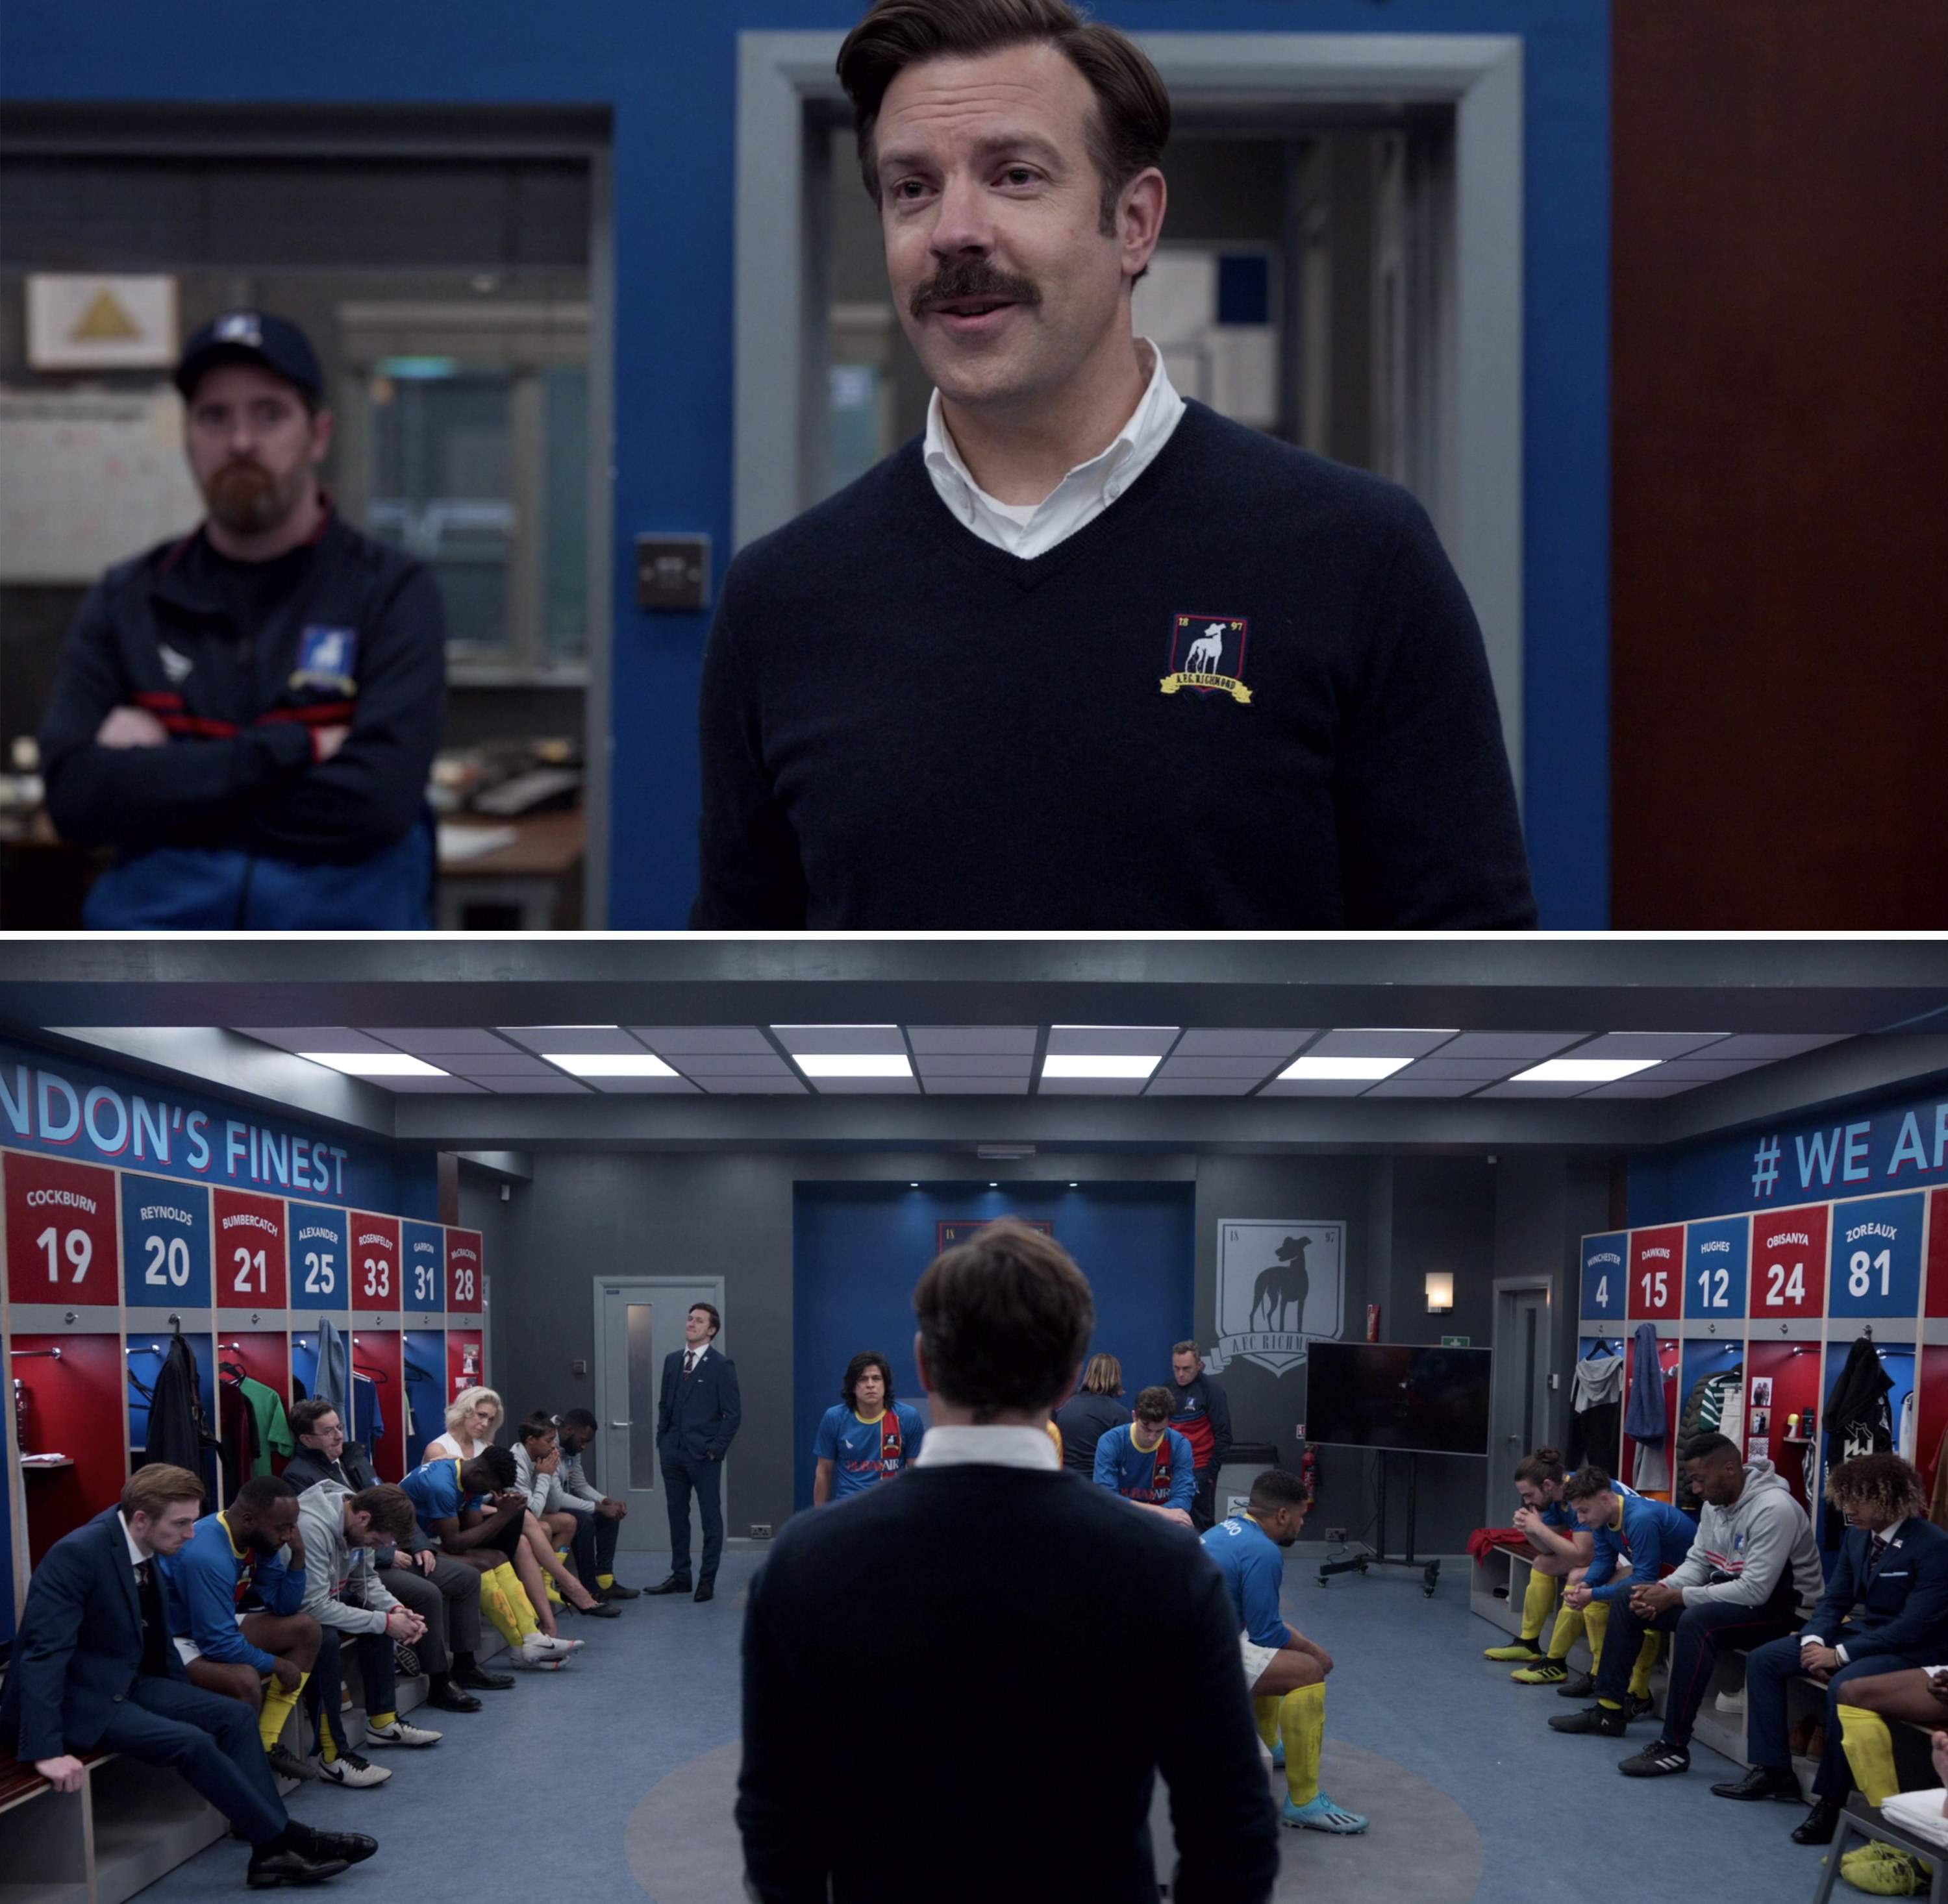 Ted talking to his team in the locker room